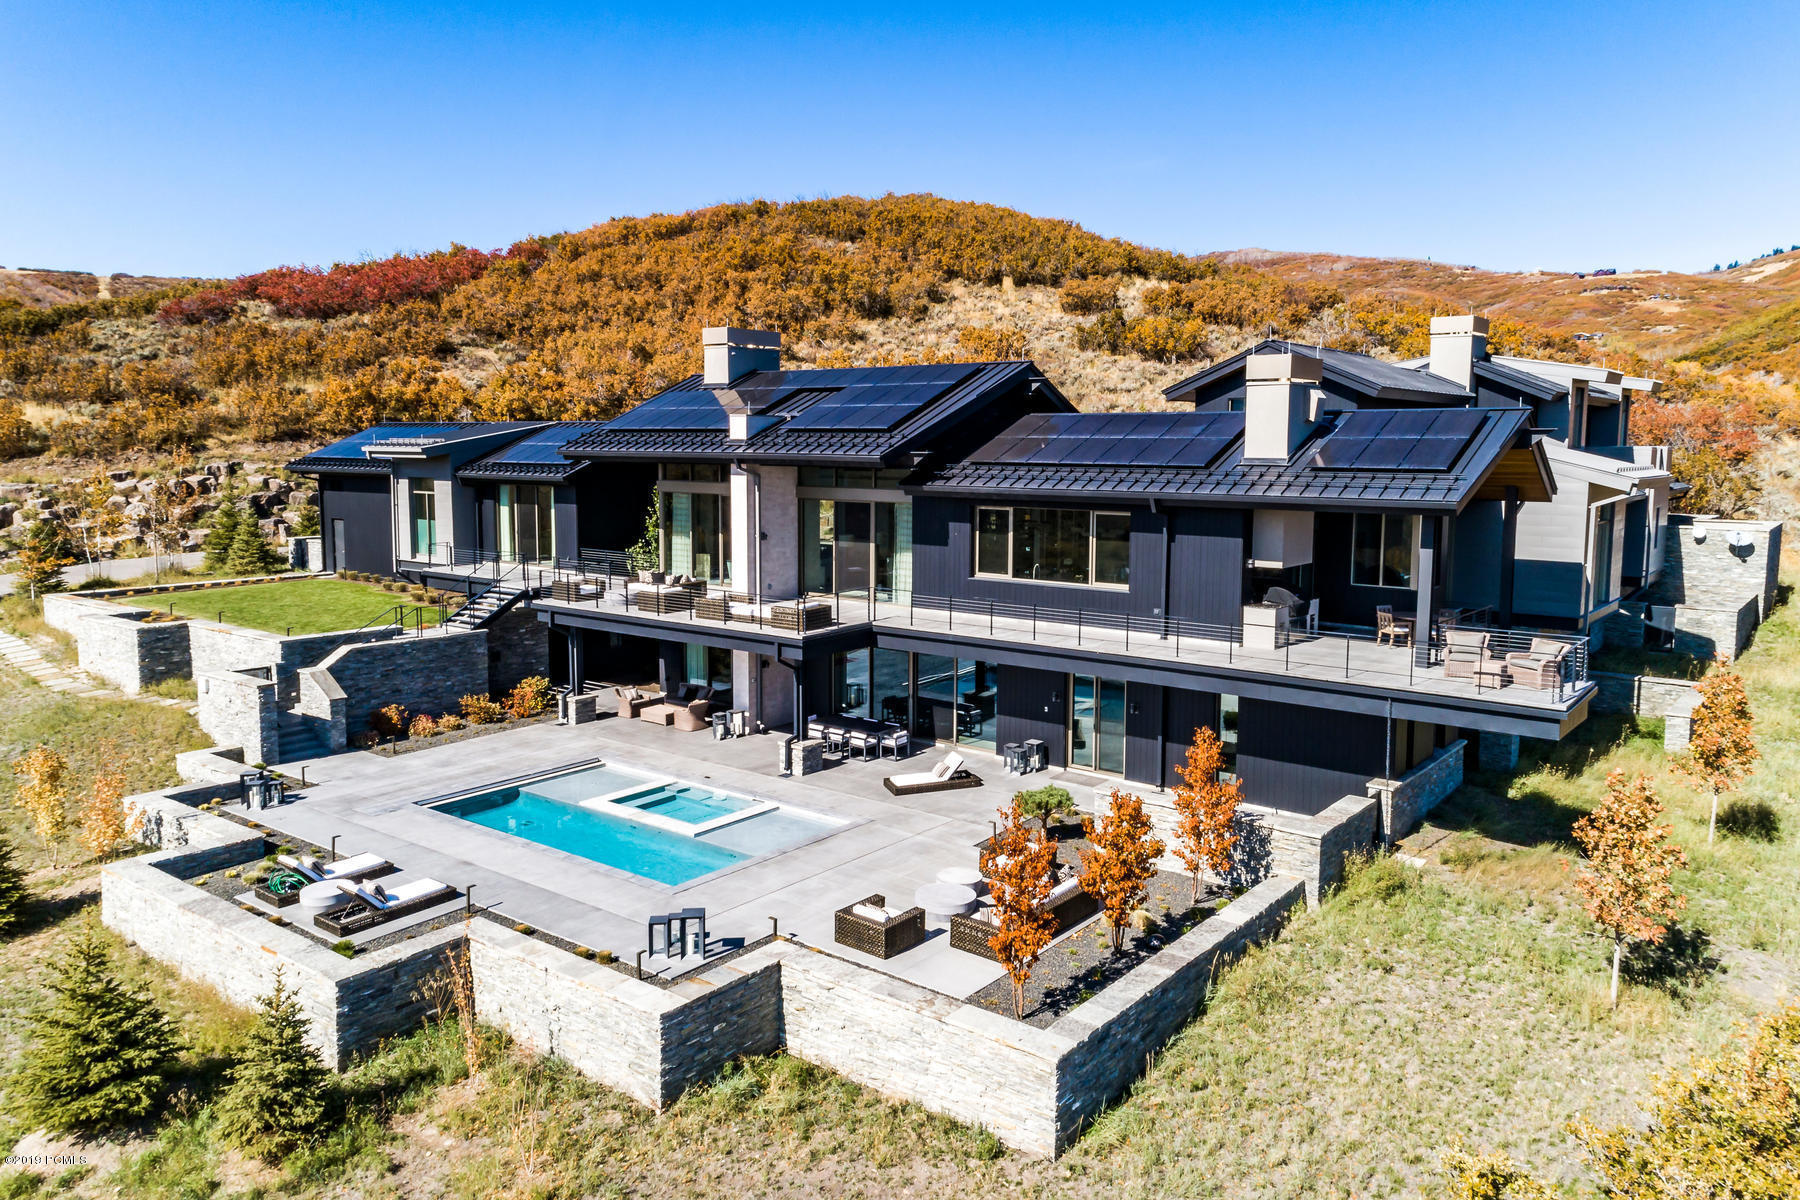 714 Red Fox Road, Park City, Utah 84098, 4 Bedrooms Bedrooms, ,8 BathroomsBathrooms,Single Family,For Sale,Red Fox,20190109112430415765000000